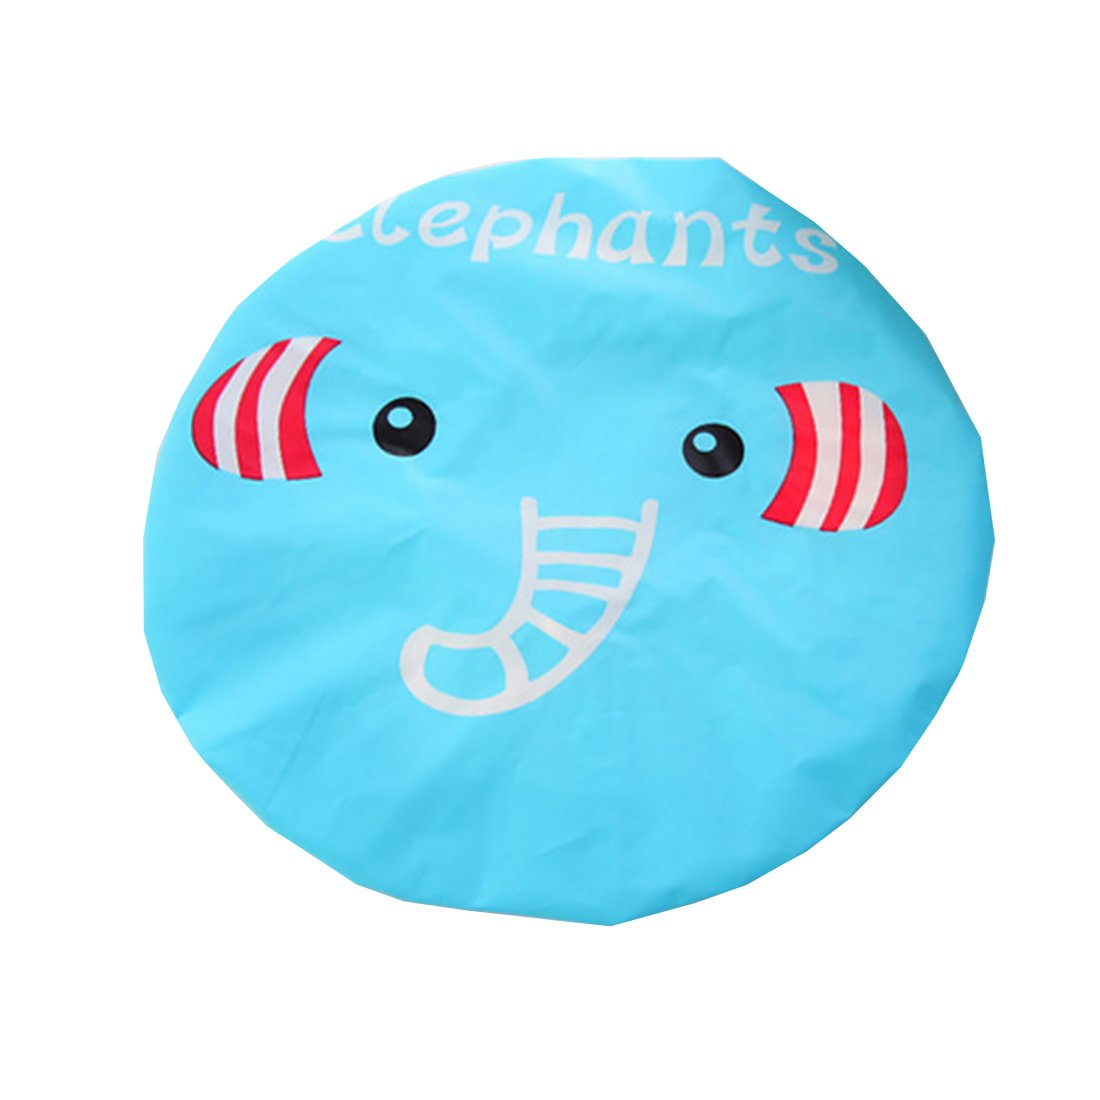 Ctgvh cute Shower Caps, plastica elastica Animal modello impermeabile bagno makeup Care Cap per donne ragazze (Elephant pattern)